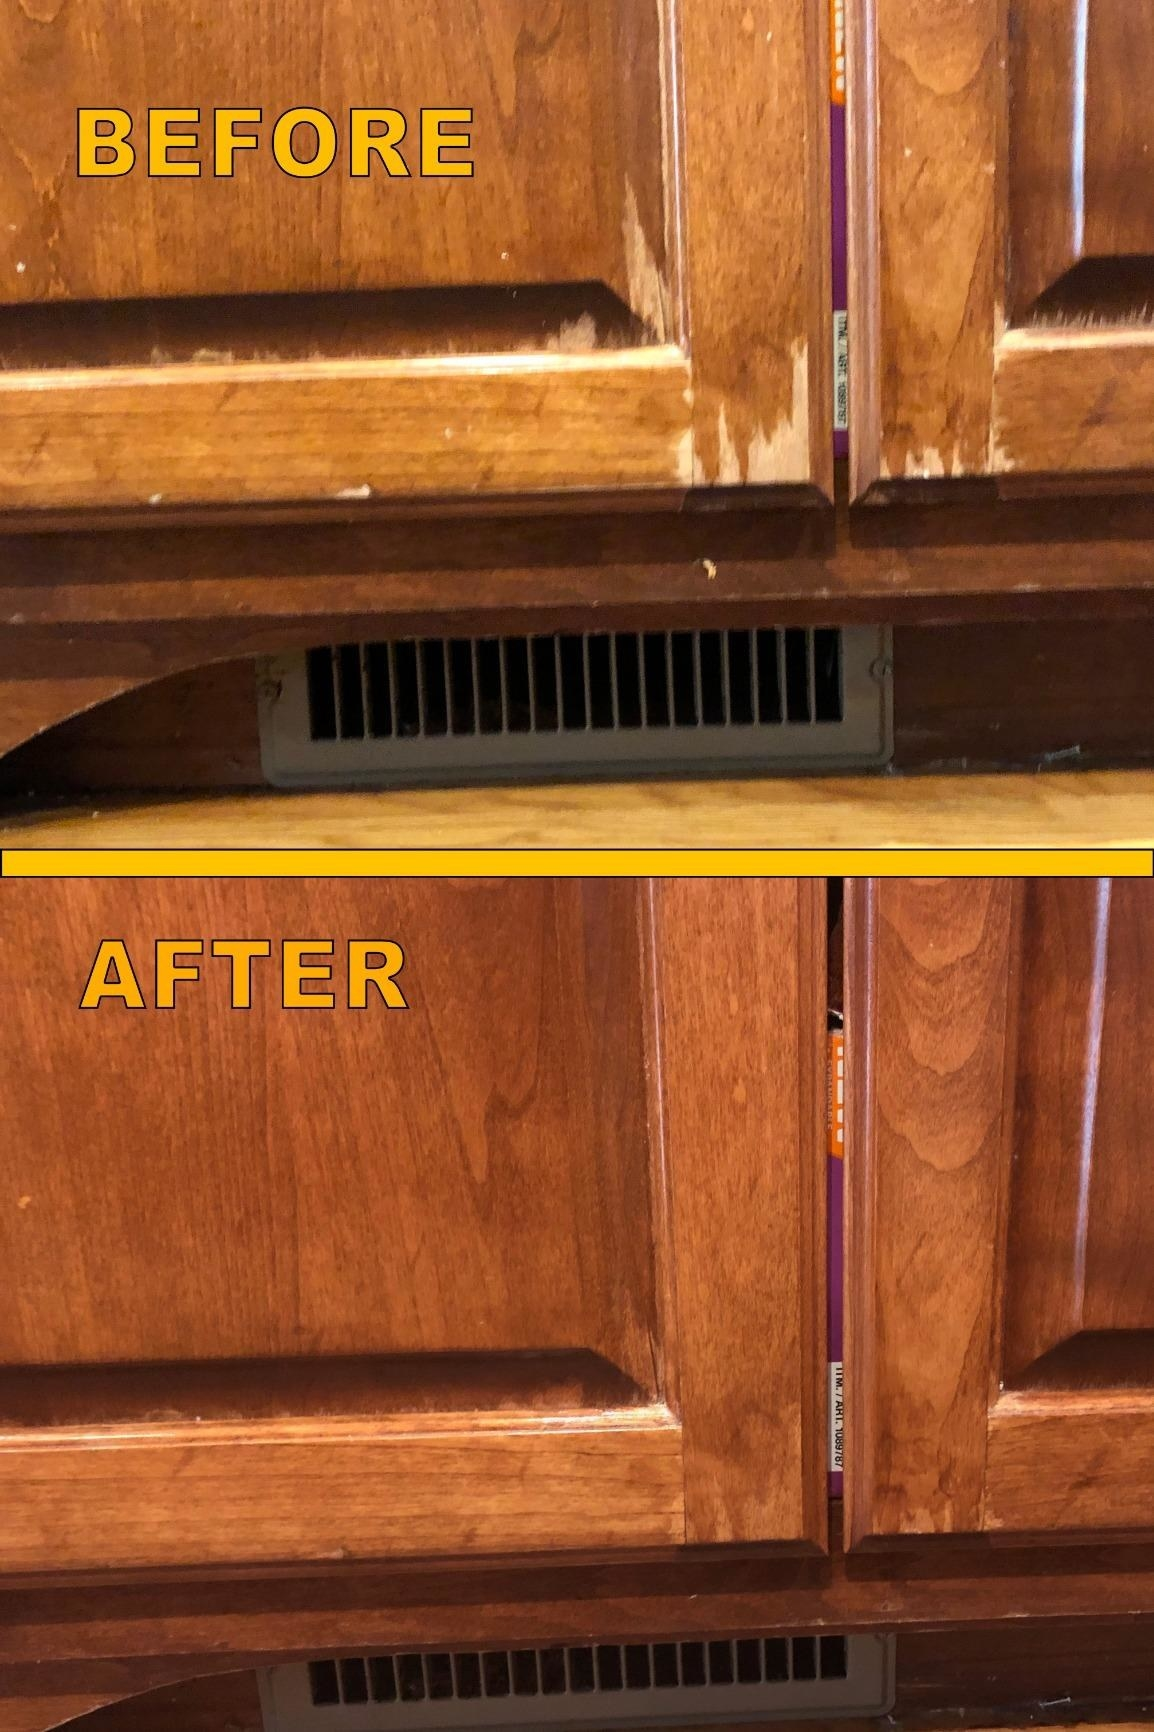 A review image of worn-out, semi-stripped cabinets before, and then solid color polished cabinets after